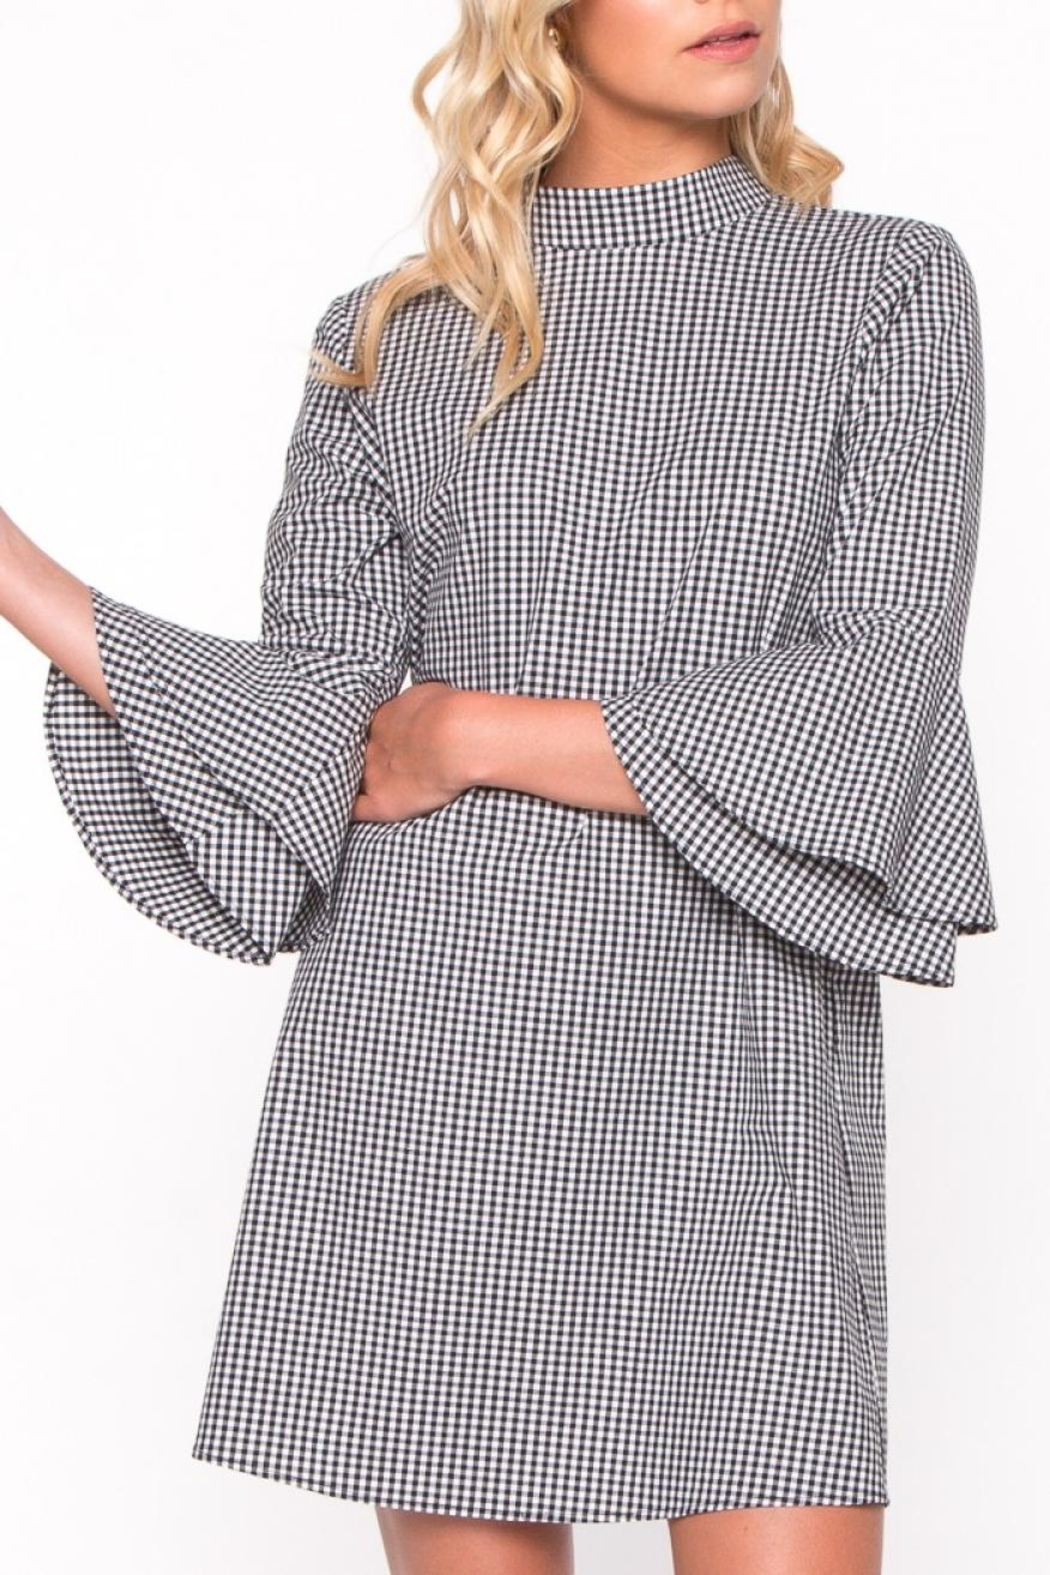 Everly Gingham Bell Sleeve Dress - Main Image